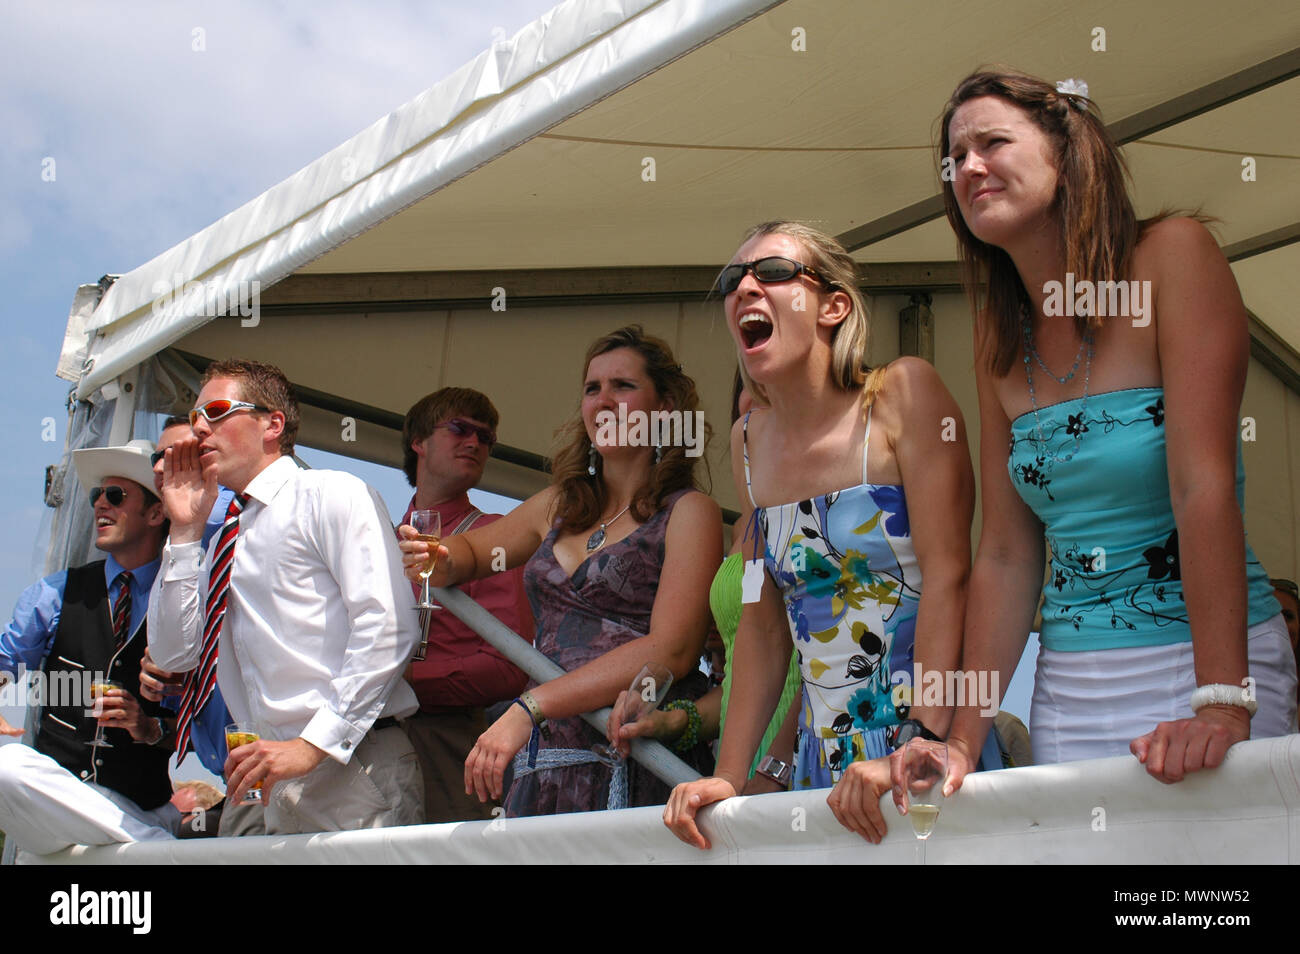 3e77d53a63fd53 Spectators cheering the rowers on, Henley Royal Regatta, Oxfordshire, UK